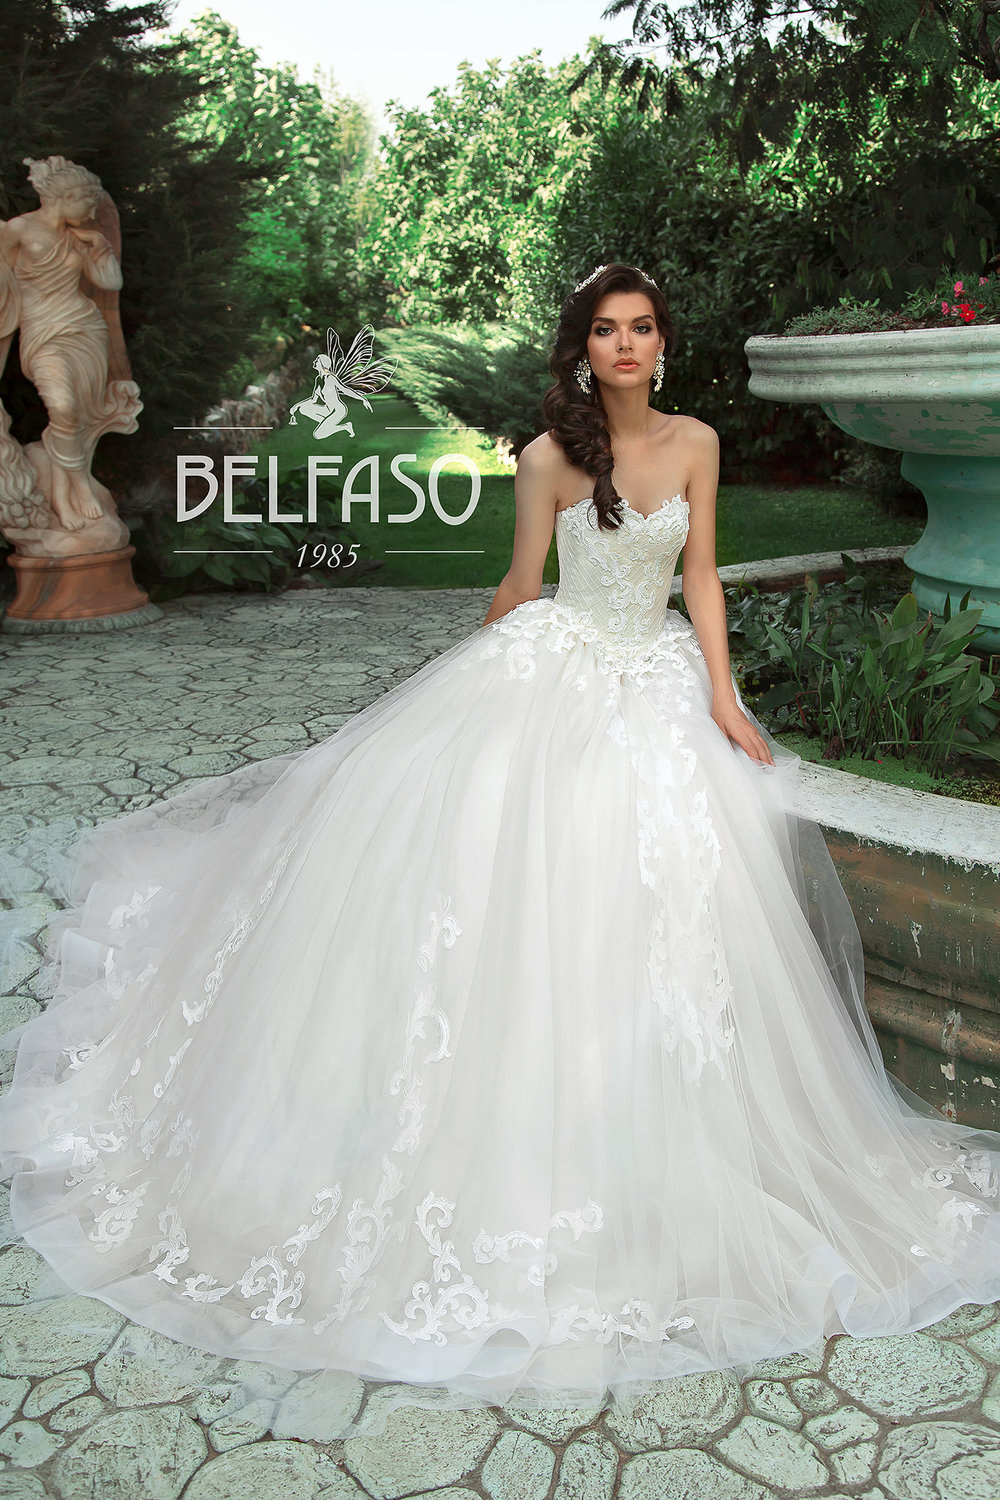 ALAMEYA dress by BELFASO